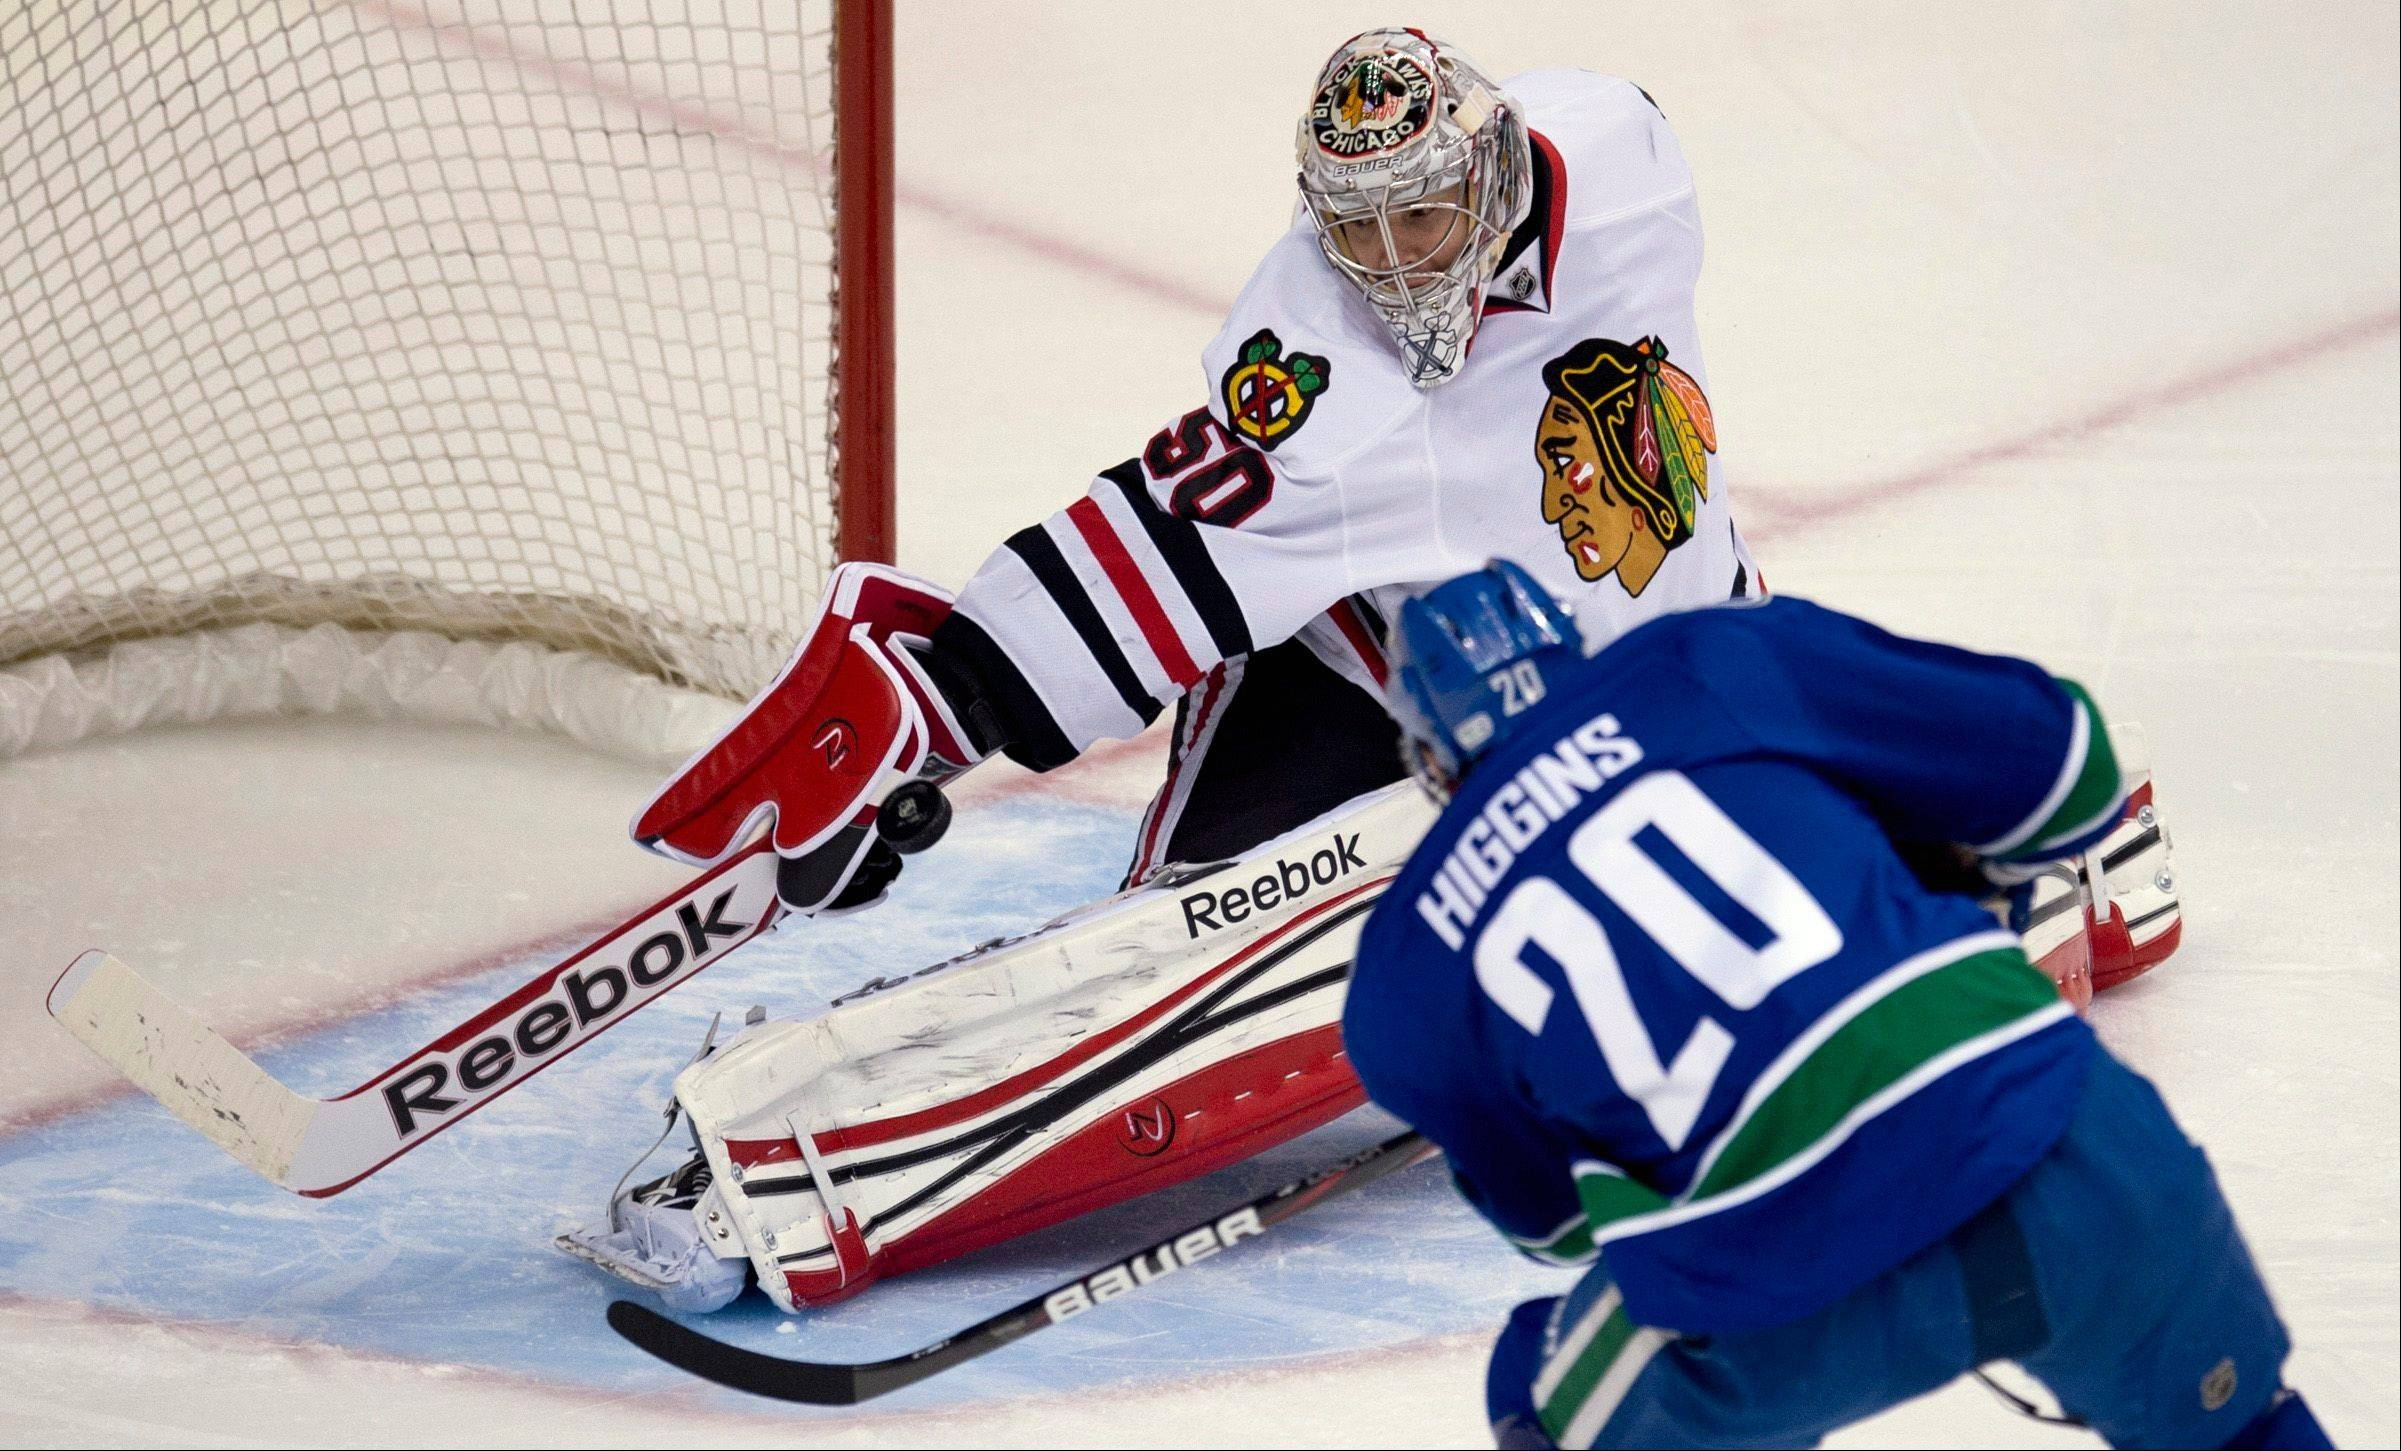 Vancouver Canucks left wing Chris Higgins (20) tries to get a shot past Chicago Blackhawks goaltender Corey Crawford during the first period of an NHL hockey game in Vancouver, B.C. on Monday, April 22, 2013.